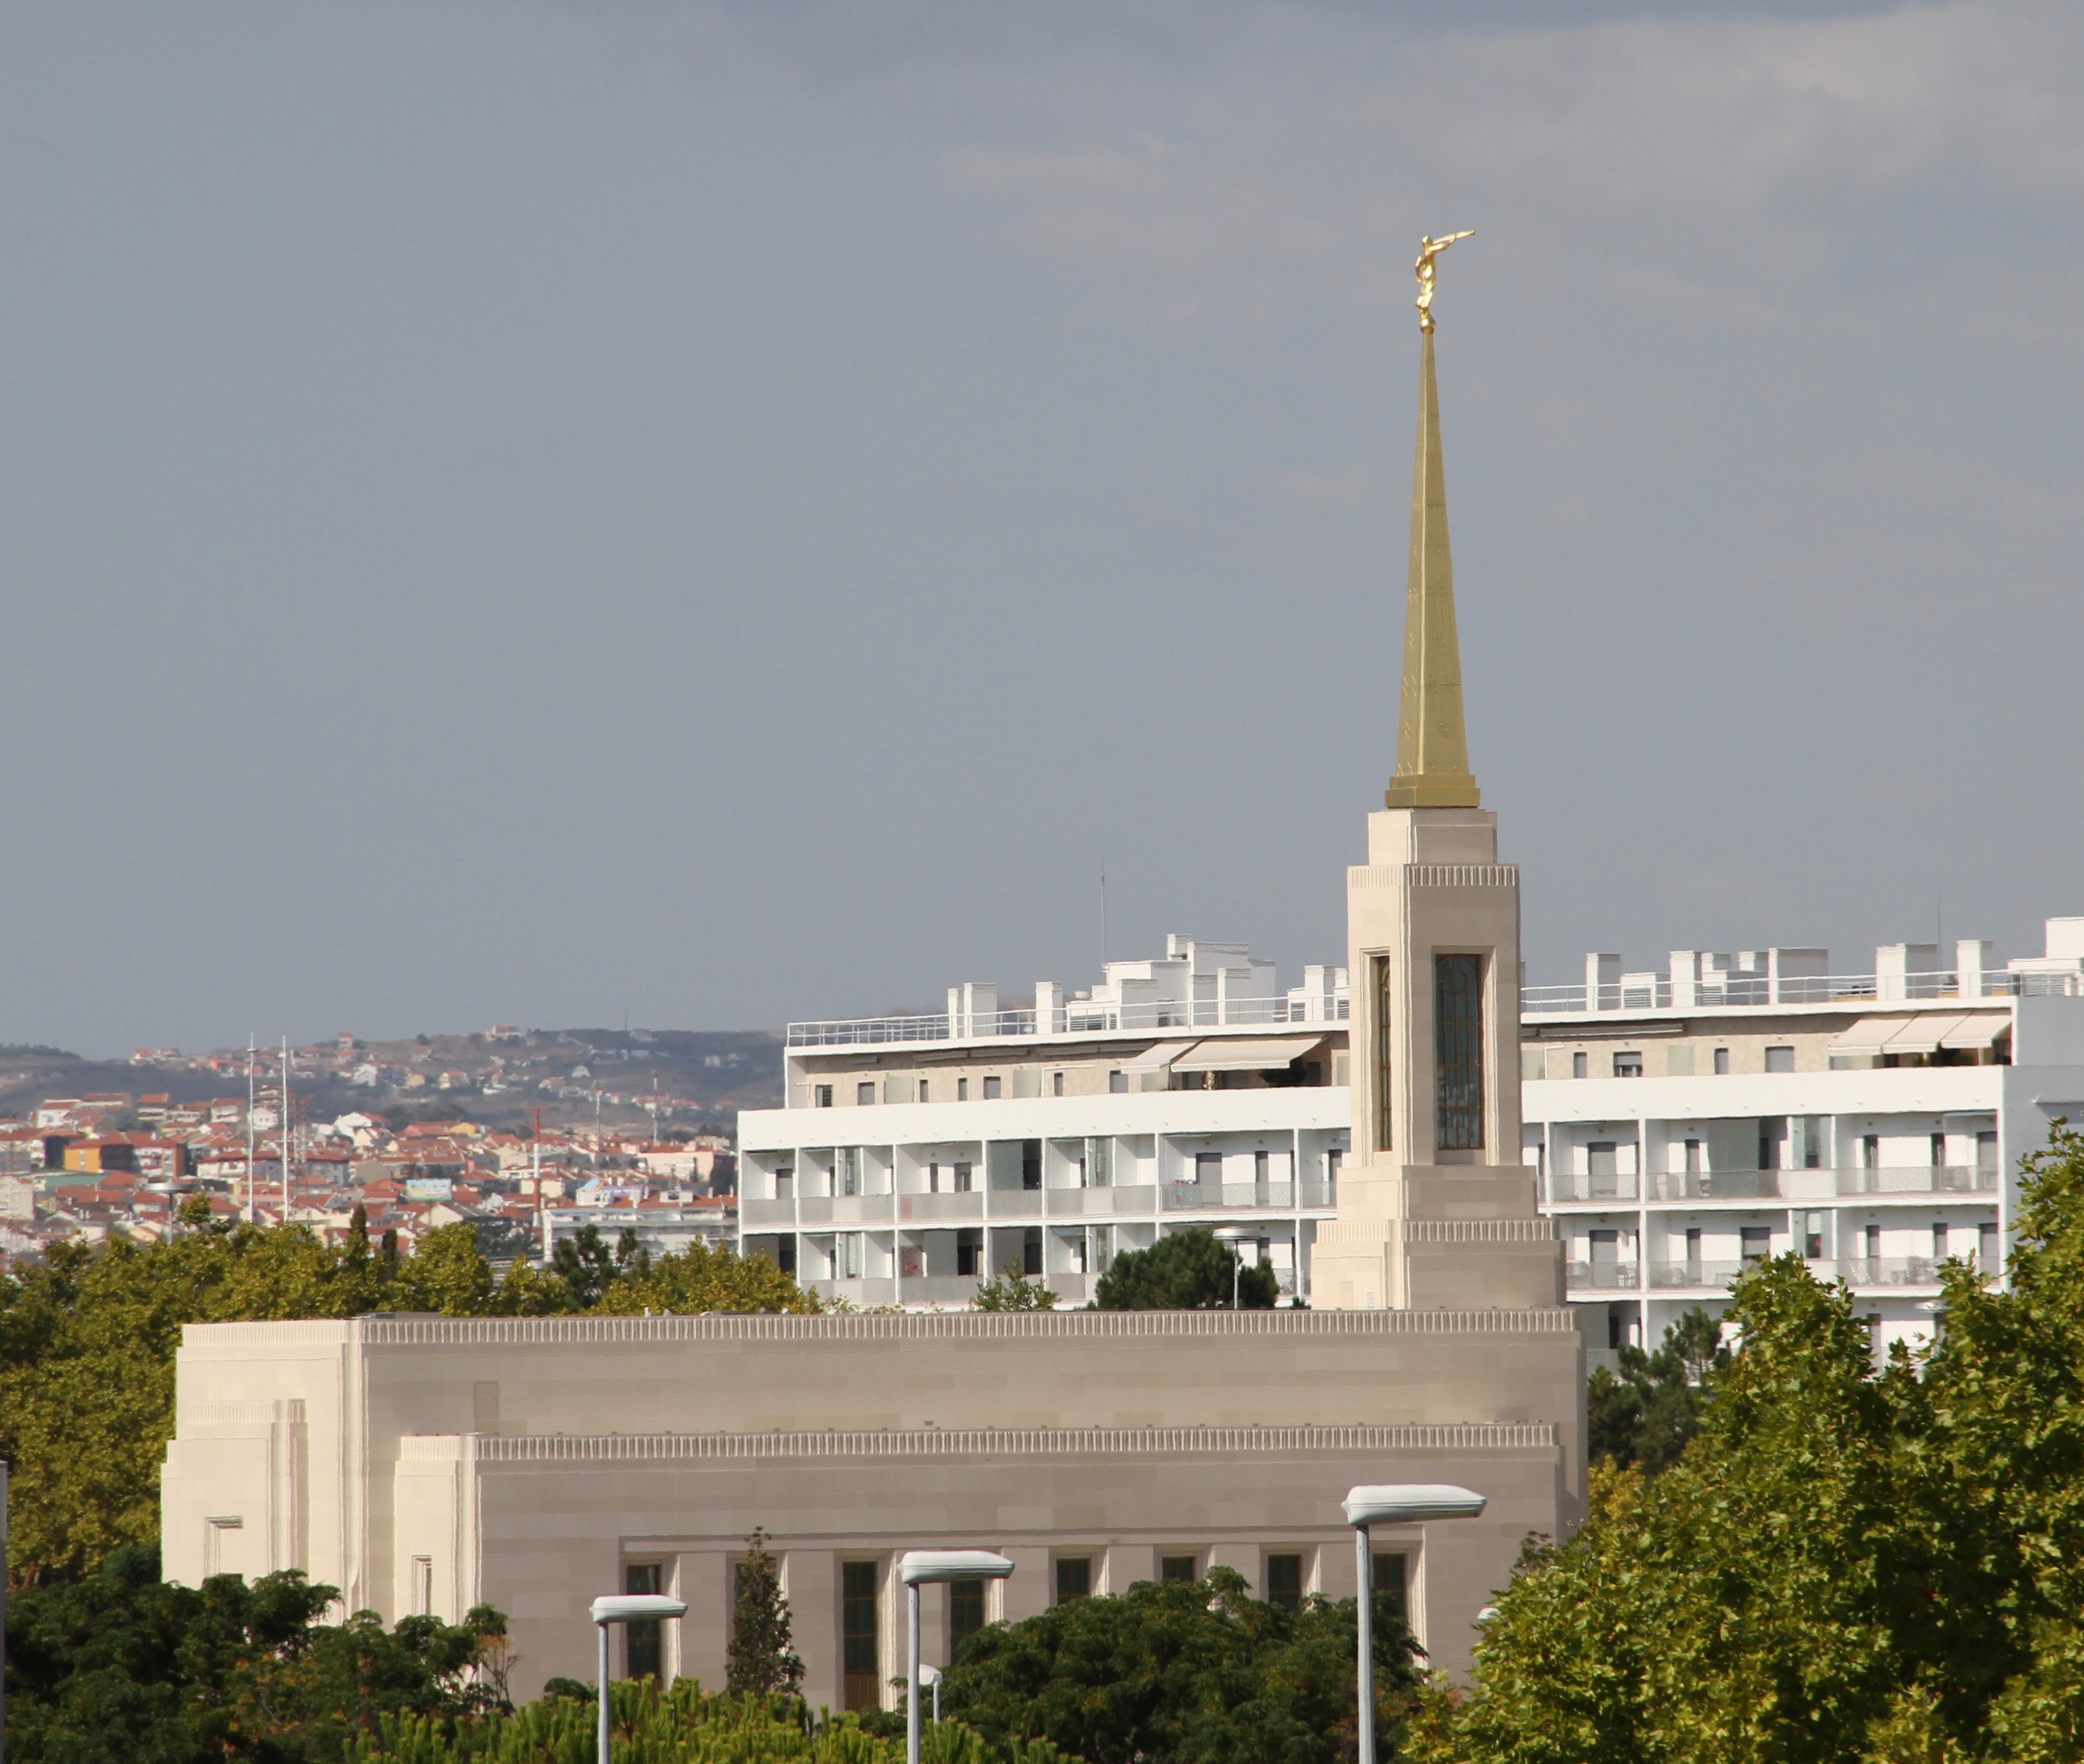 The Lisbon Portugal Temple on Saturday, Sept. 14, 2019.